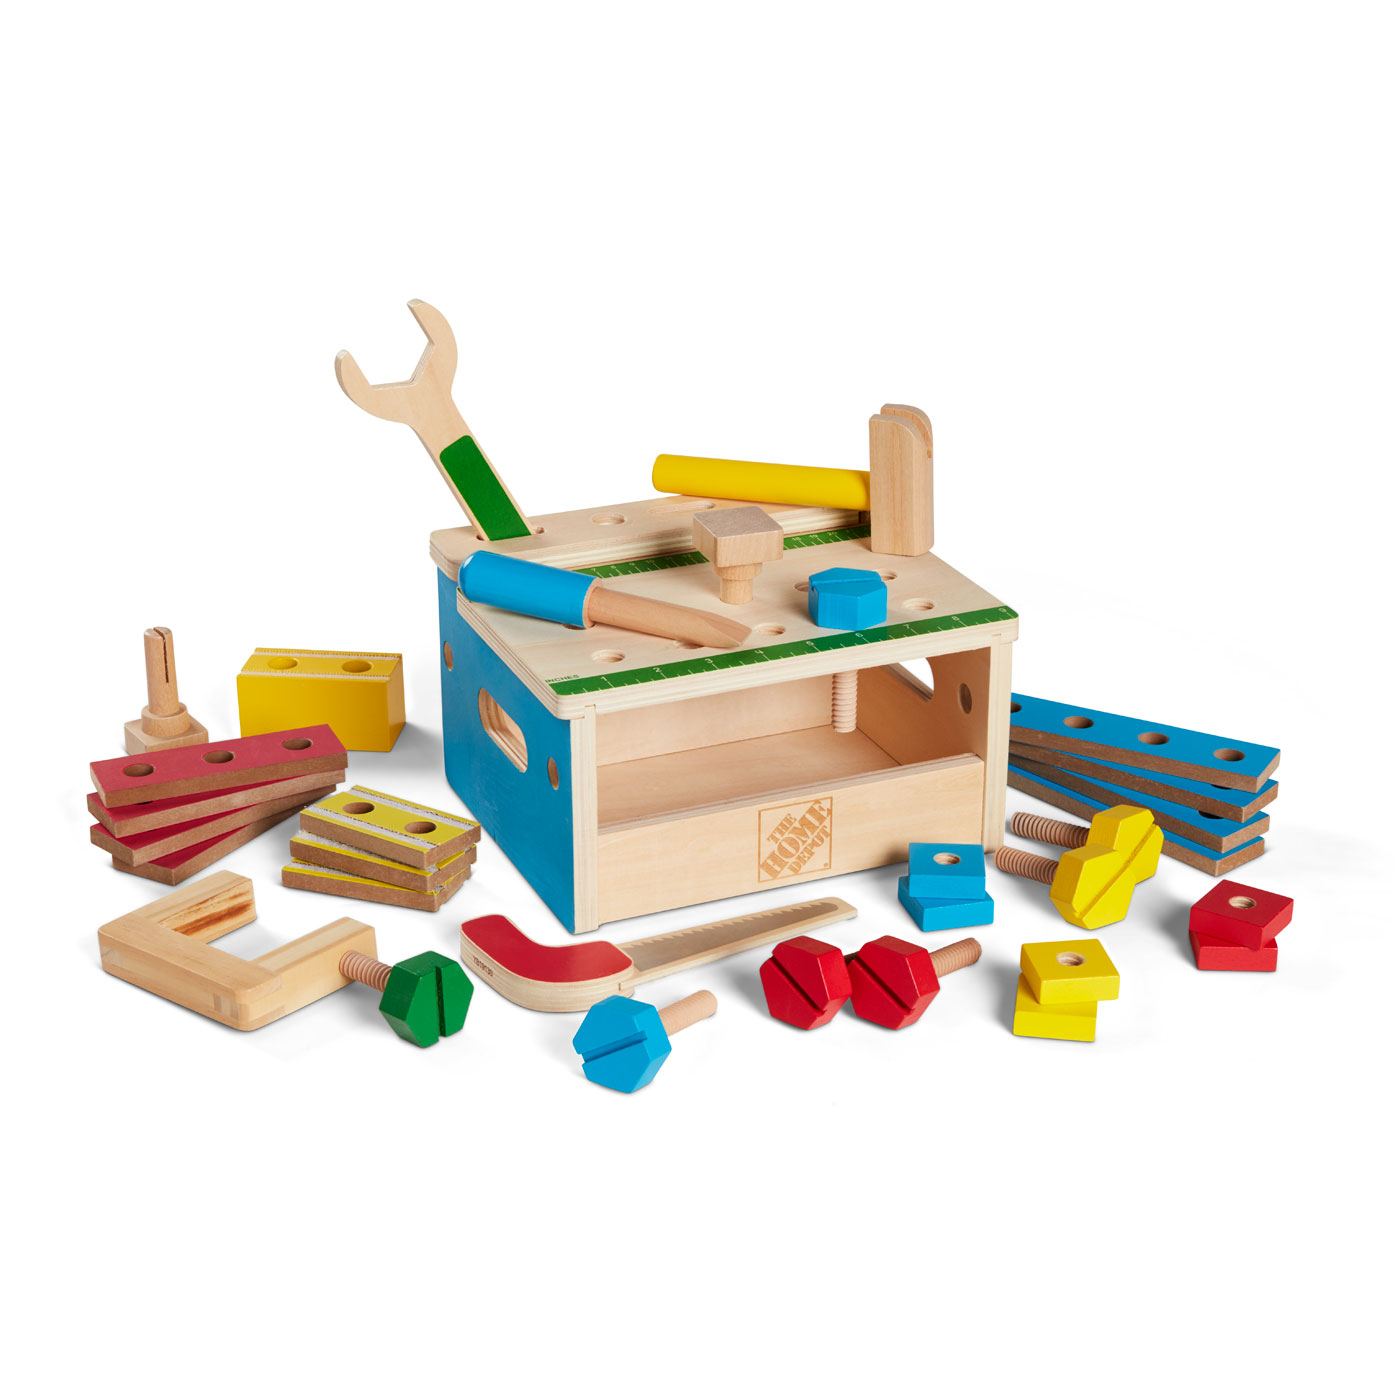 Stupendous Melissa And Doug Hammer And Saw Mini Tool Bench Thdgear Cjindustries Chair Design For Home Cjindustriesco